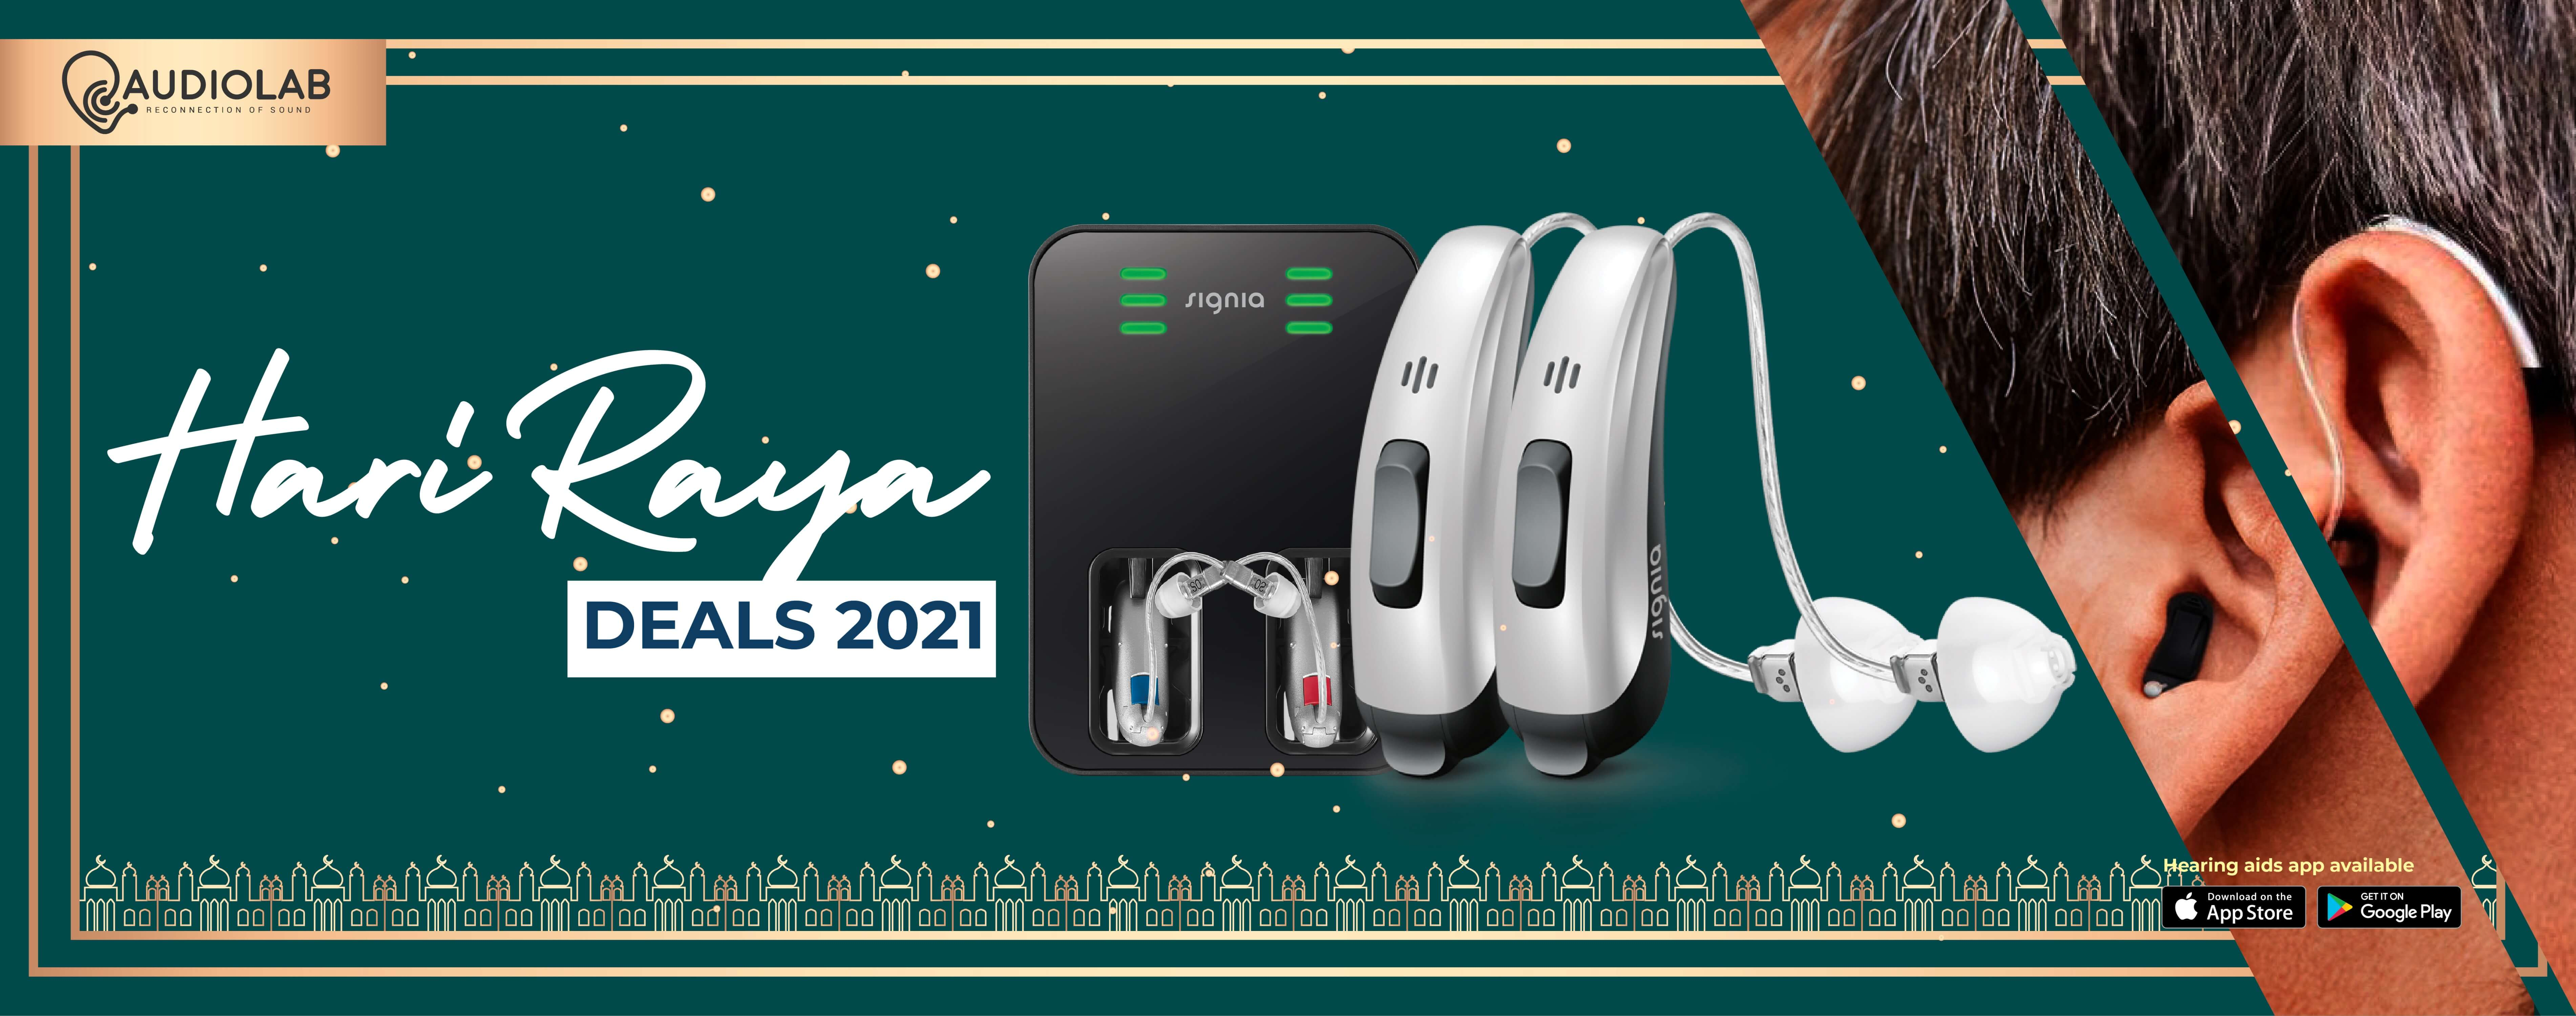 Audiolab Raya Deals 2021 - Desktop